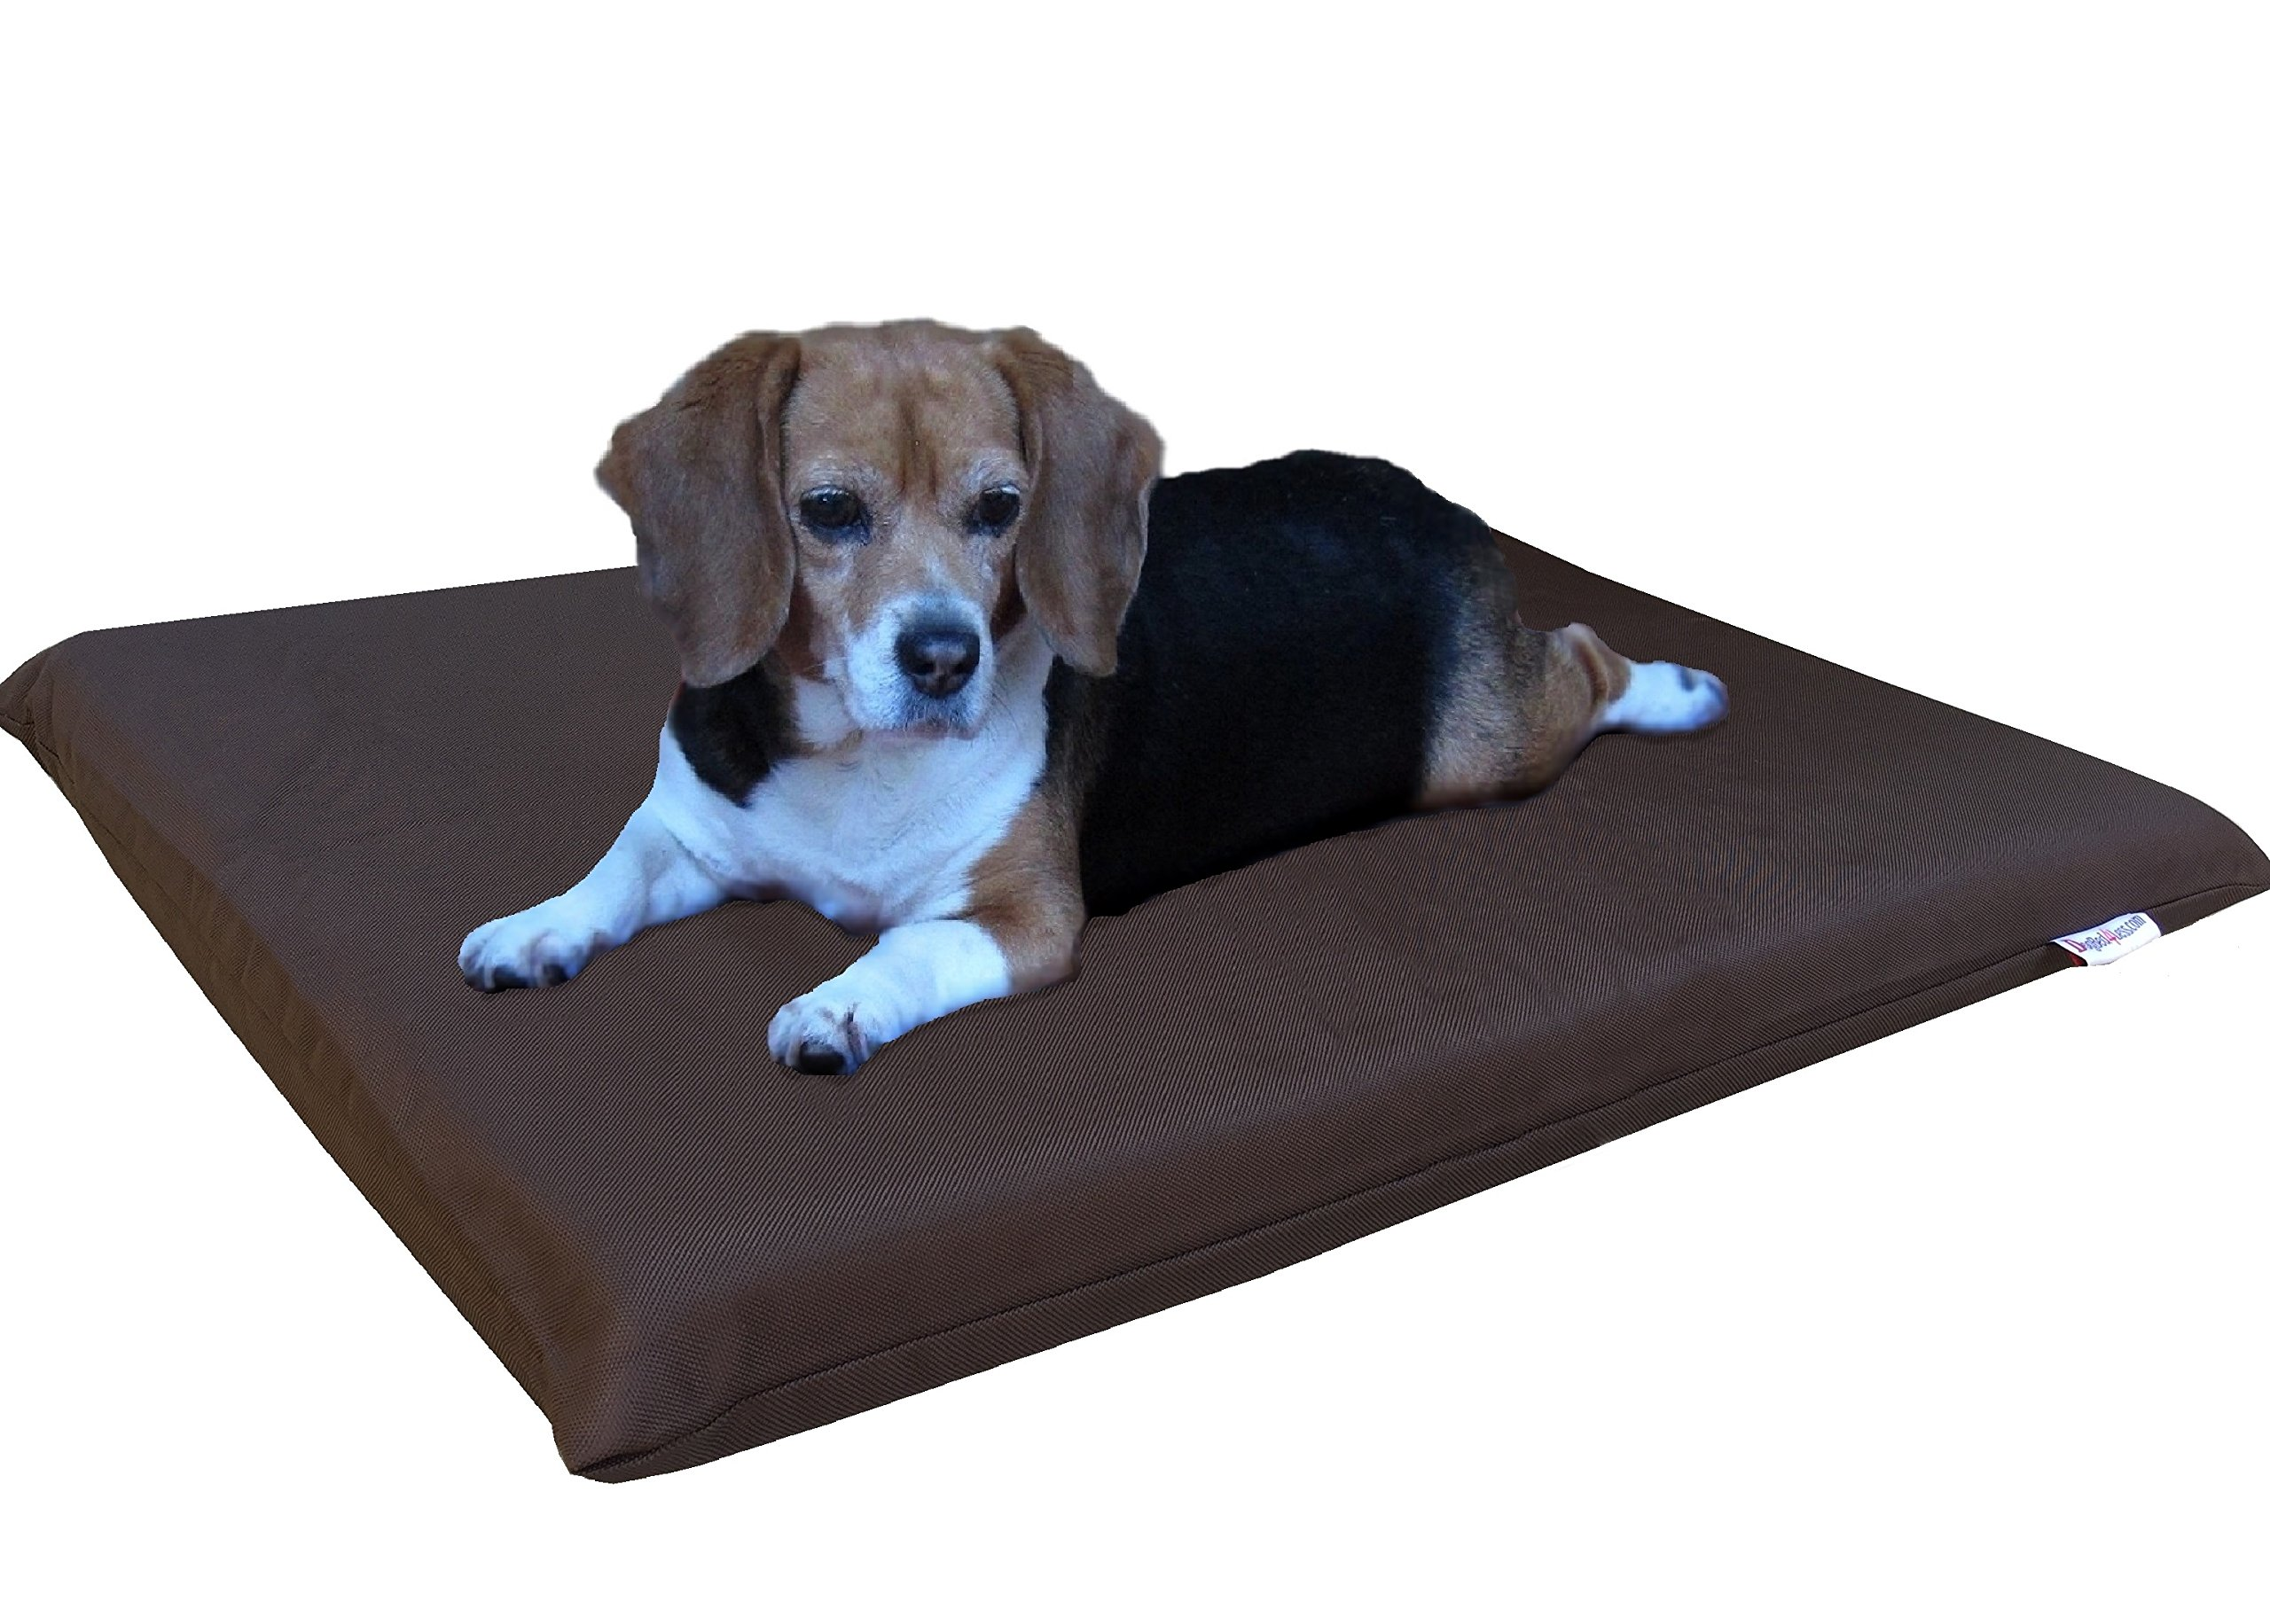 Dogbed4less Gel Cooling Memory Foam Dog Bed for Small to Medium Pet with Waterproof Internal Cover, 1680 Nylon Seal Brown 34X27X3 Inches